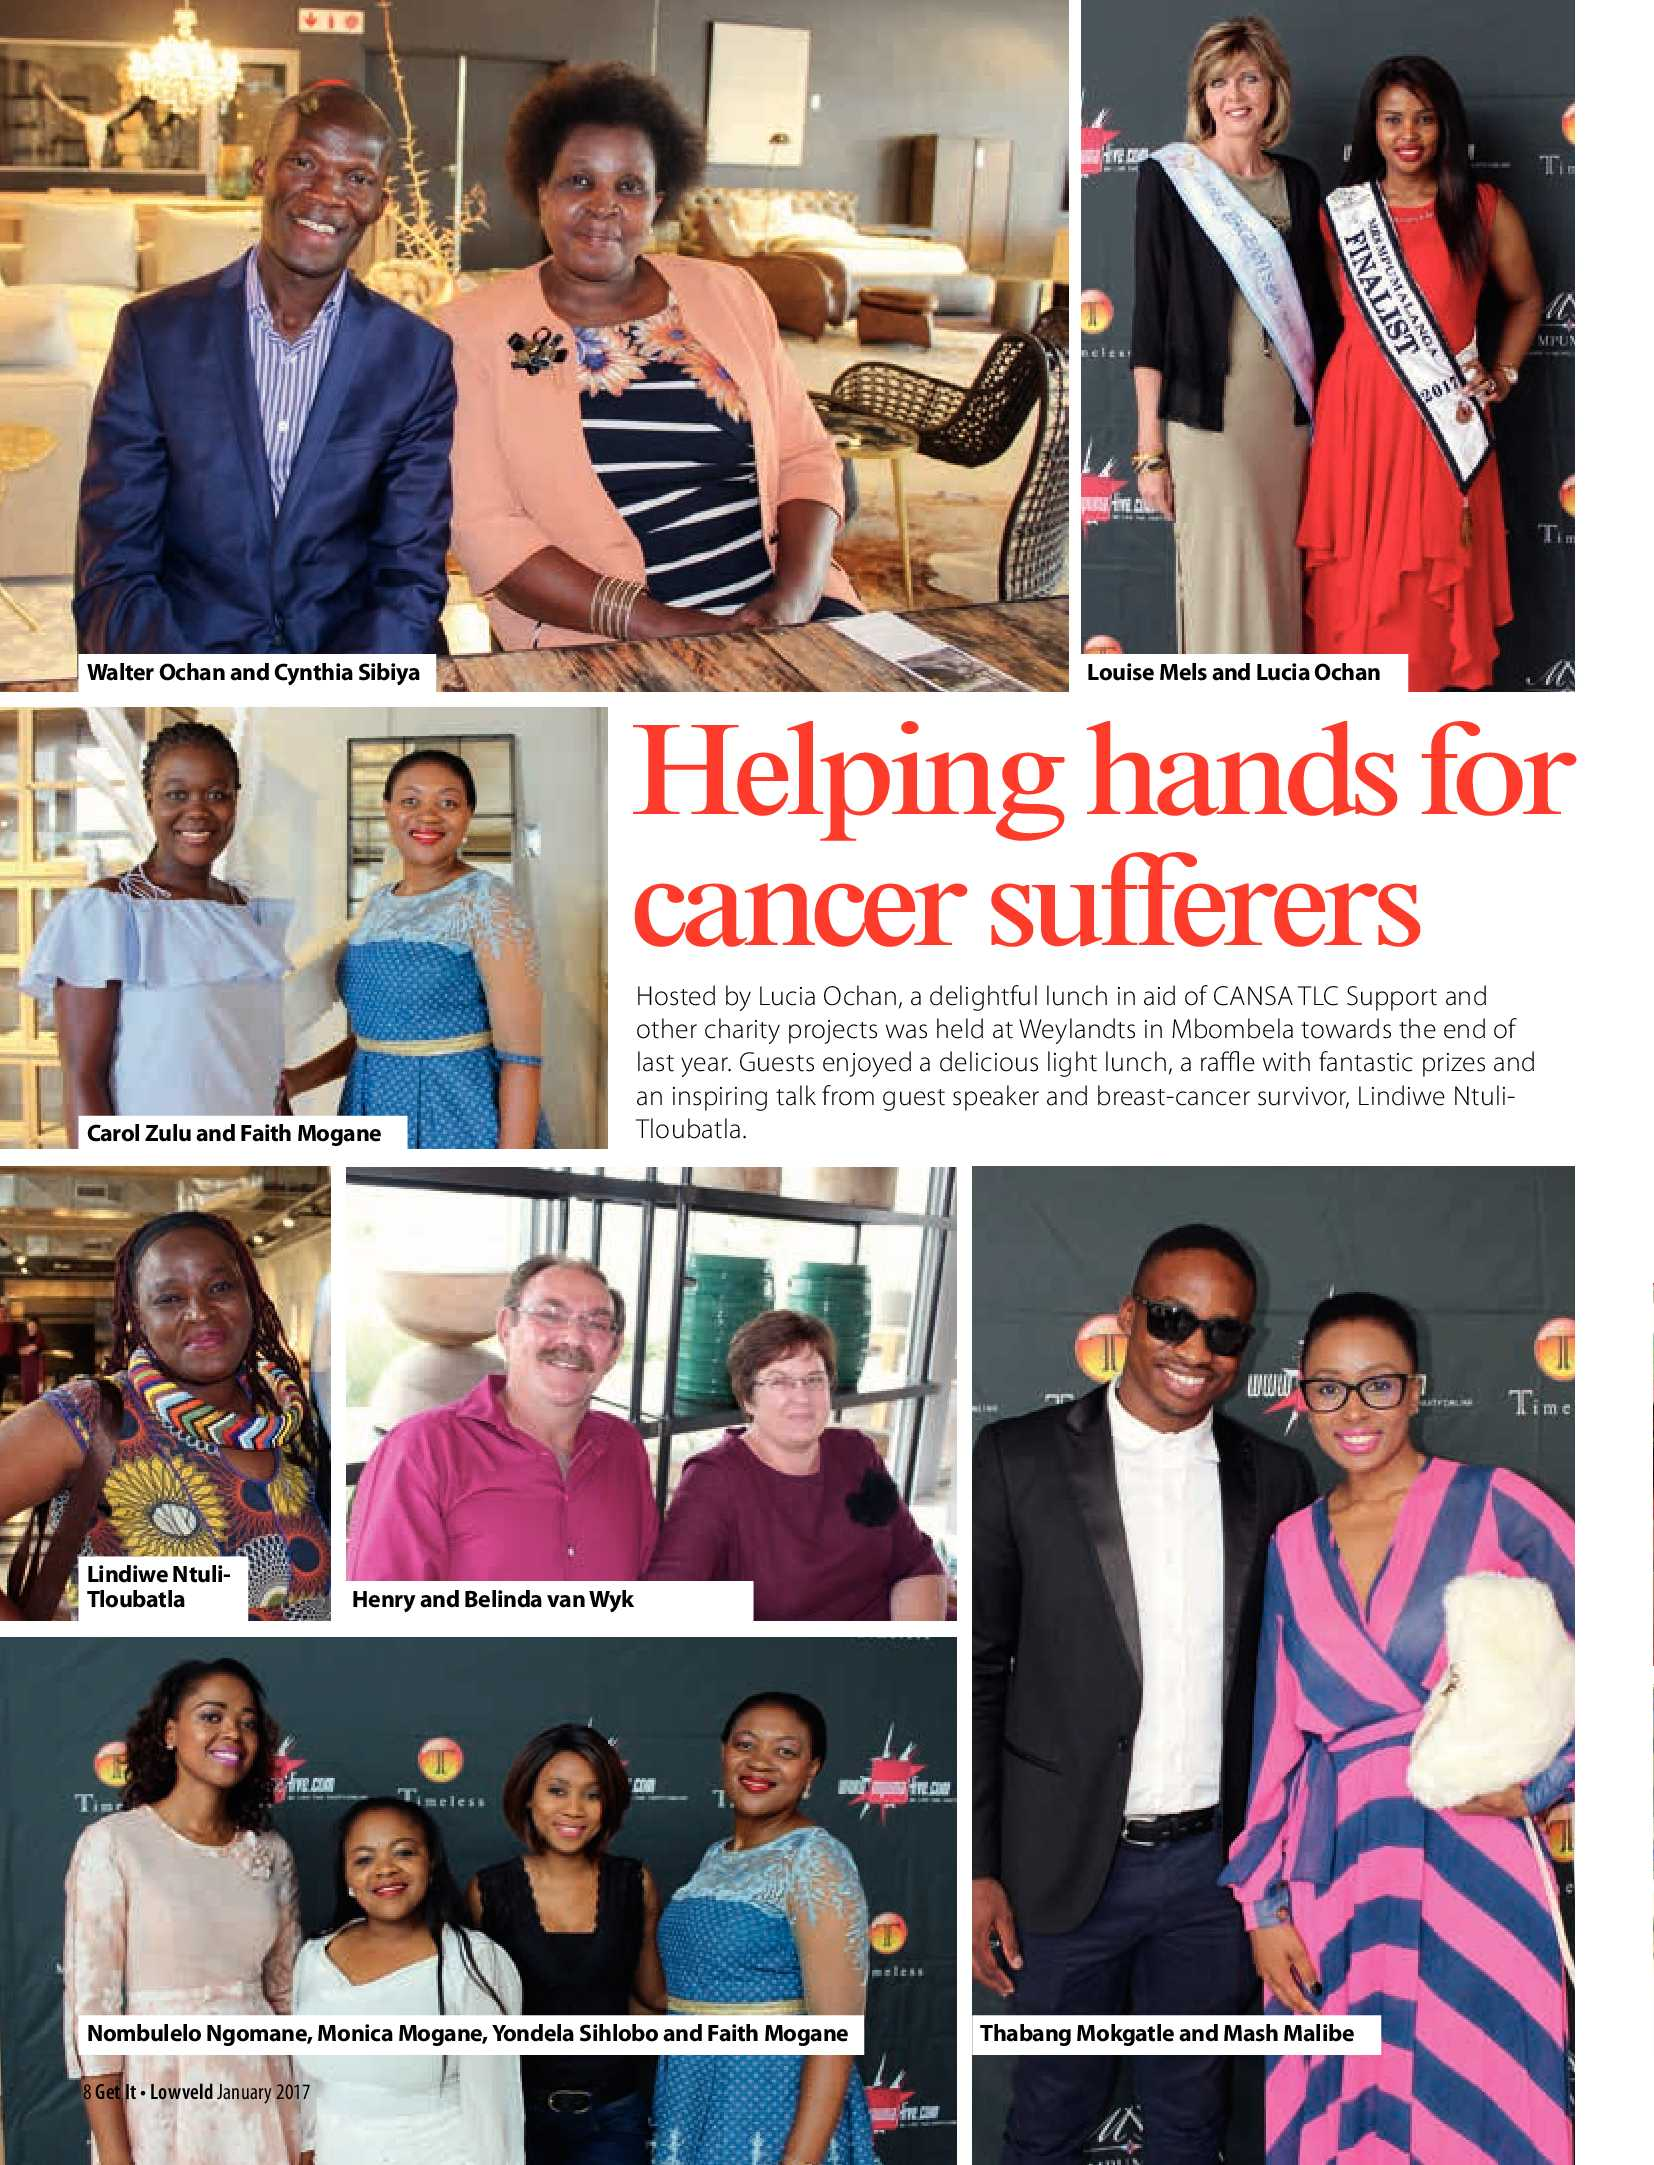 get-it-lowveld-january-2017-epapers-page-10